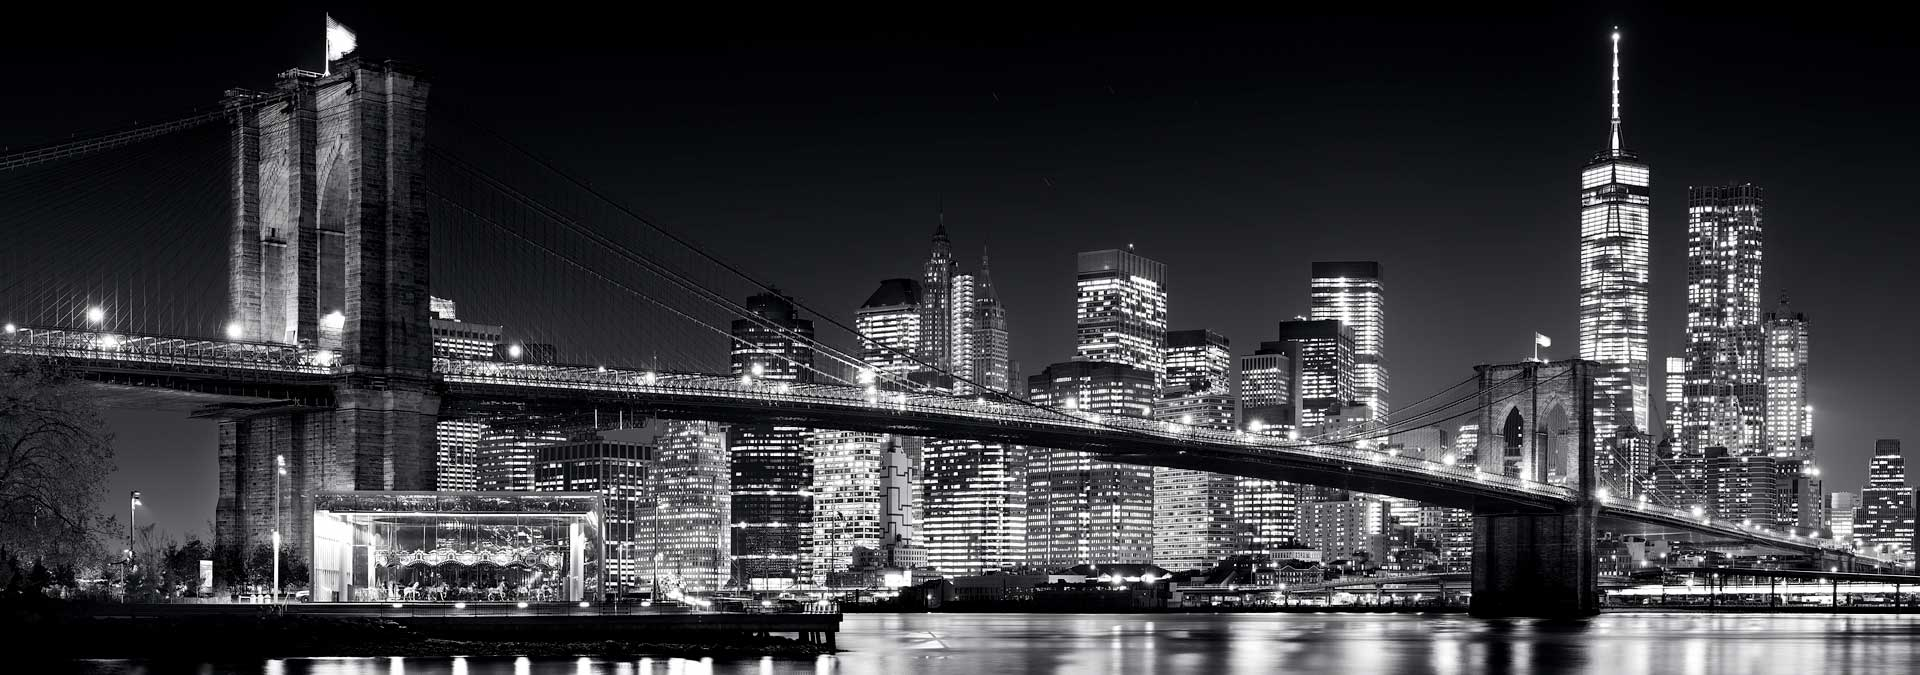 Black and white cityscape and skyline photographs of New York City – large-format gallery prints framed in various styles